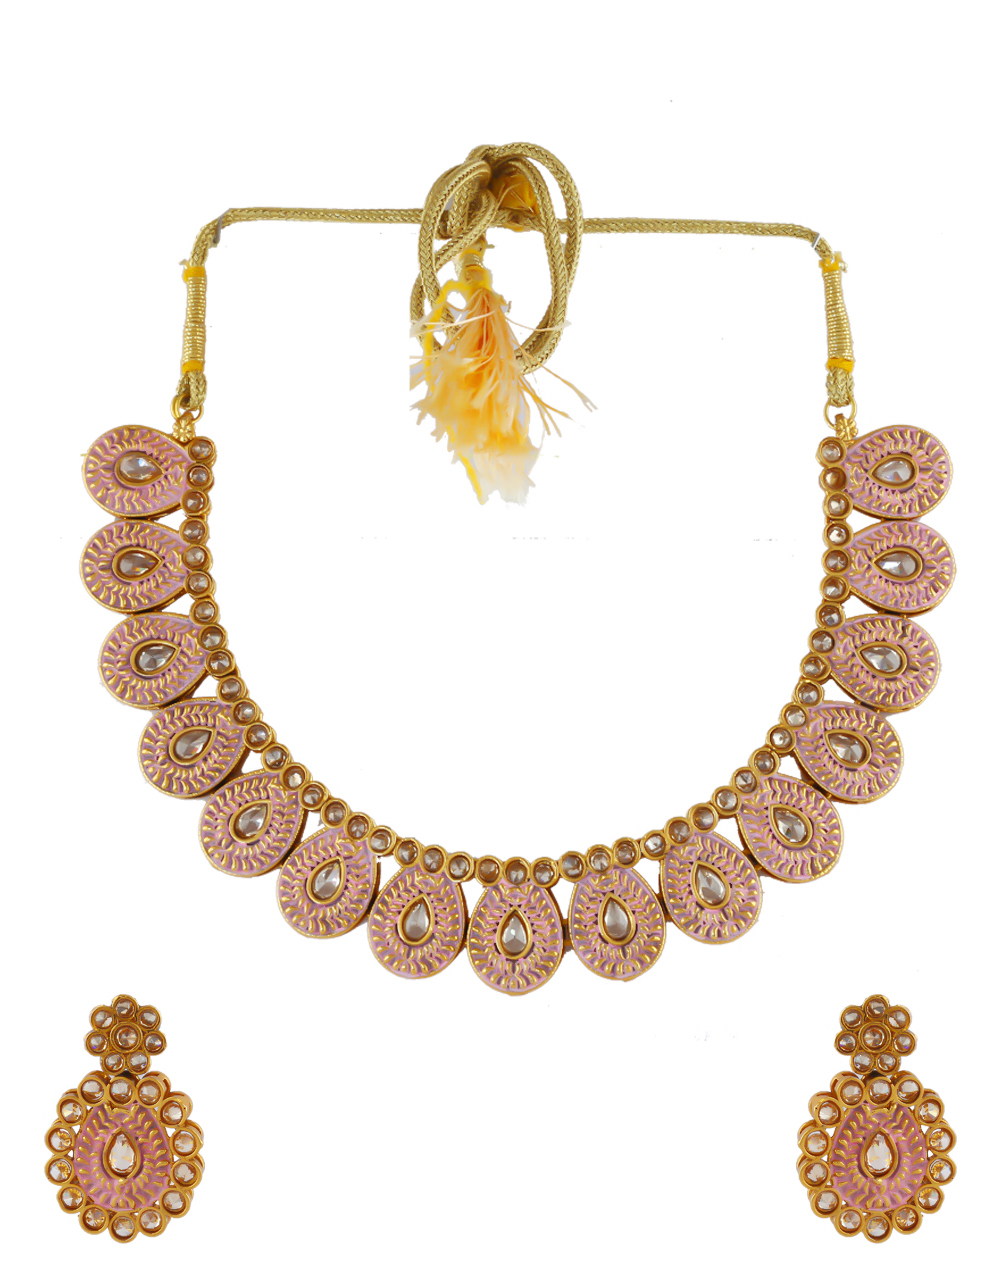 Pink Colour Antique Gold Finish Studded With Stones Necklace Fancy